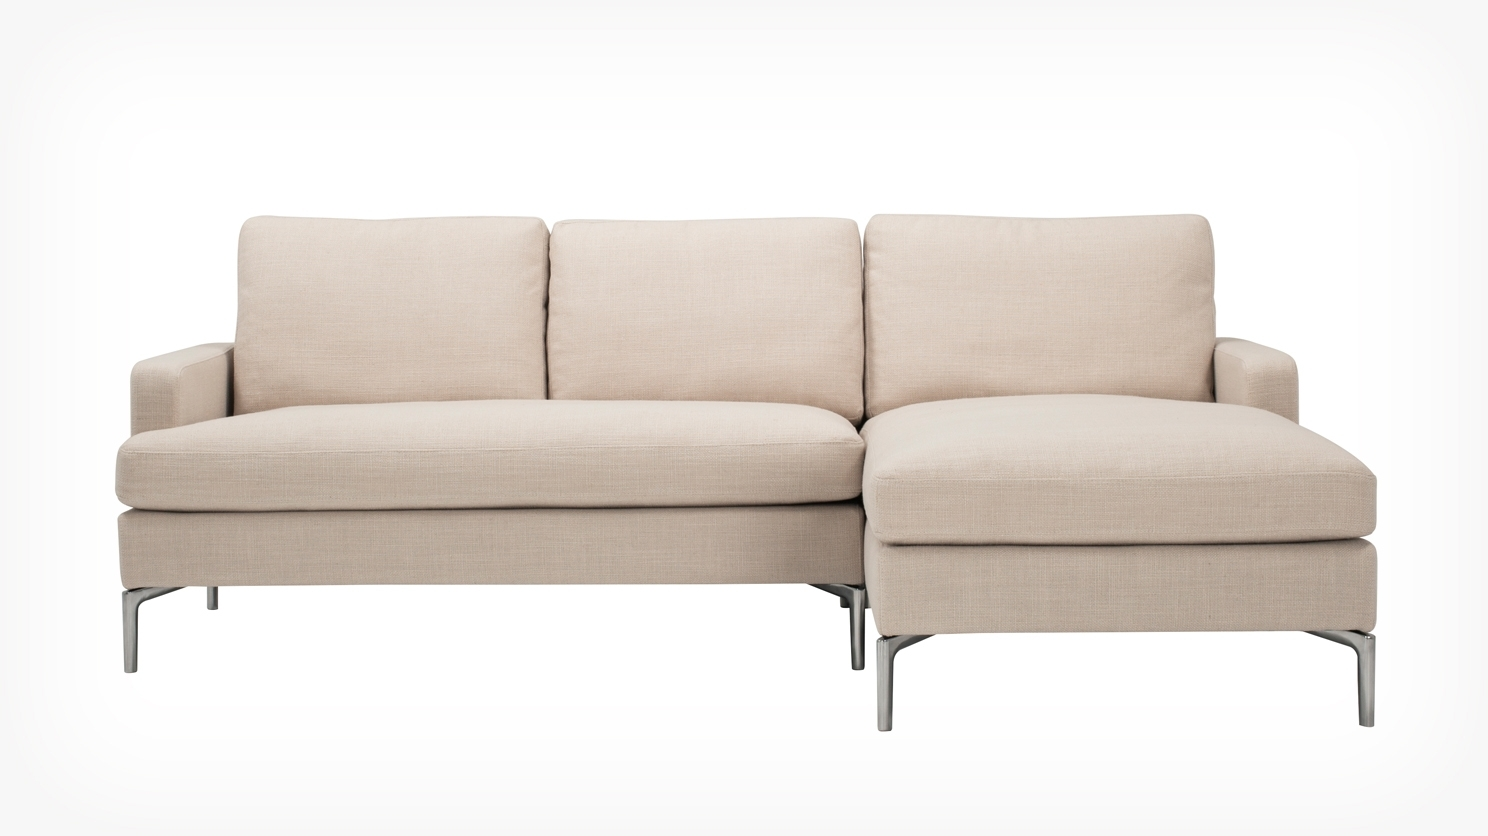 3 Pieces Small Sectional Beige Sofa With Chaise And Skinny Chrome within Preferred Small Sofa Chaises